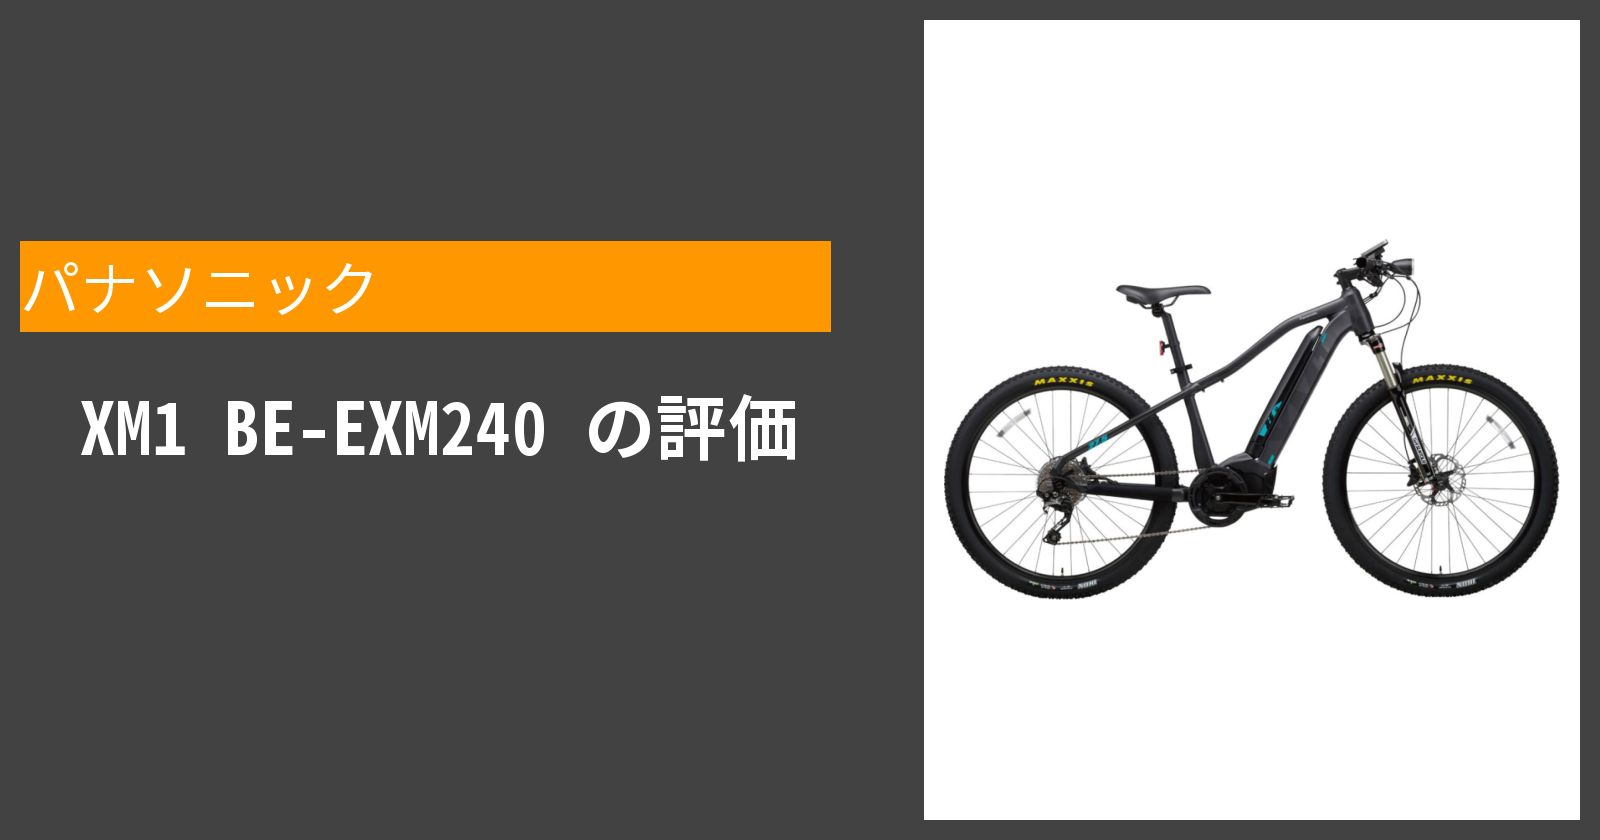 XM1 BE-EXM240を徹底評価